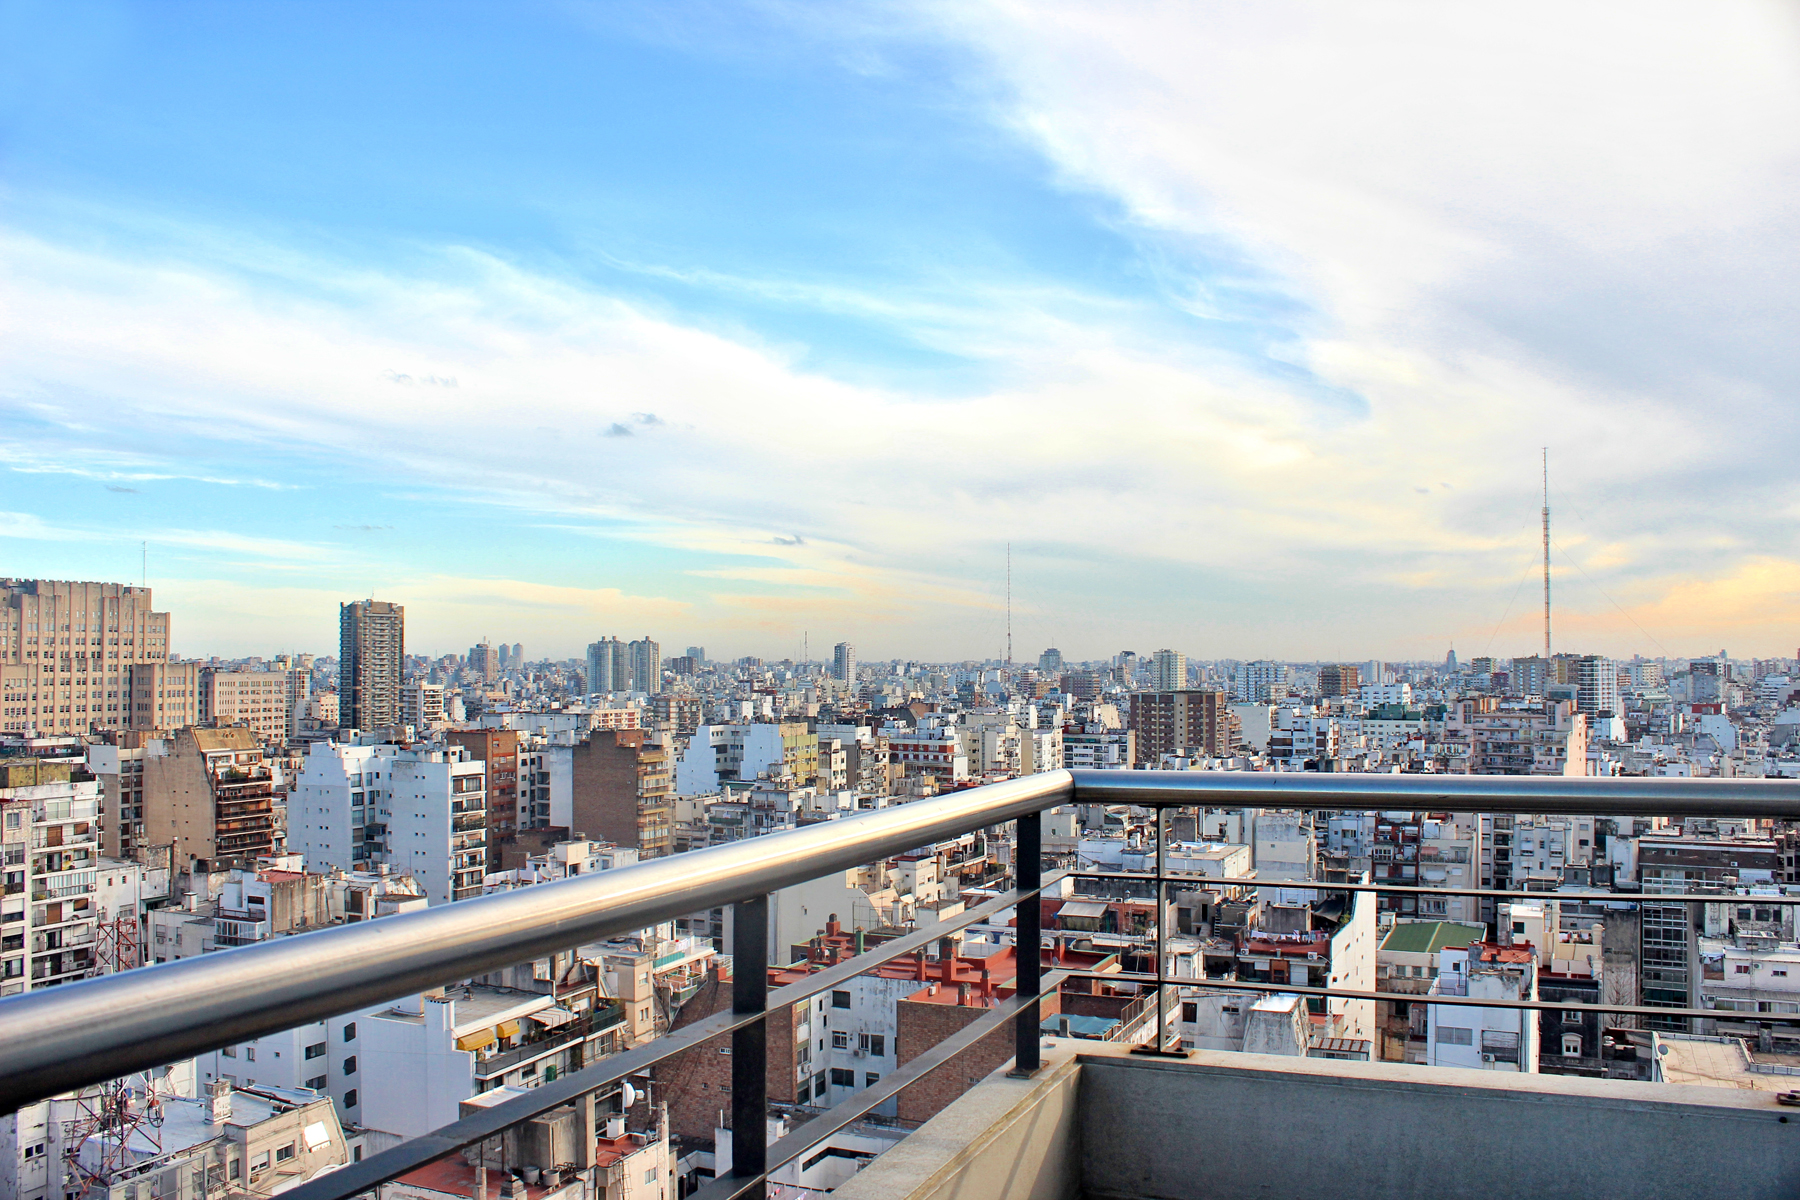 Property for Sale at Flawless duplex Riobamba 1200 Buenos Aires, Buenos Aires C1116ABJ Argentina